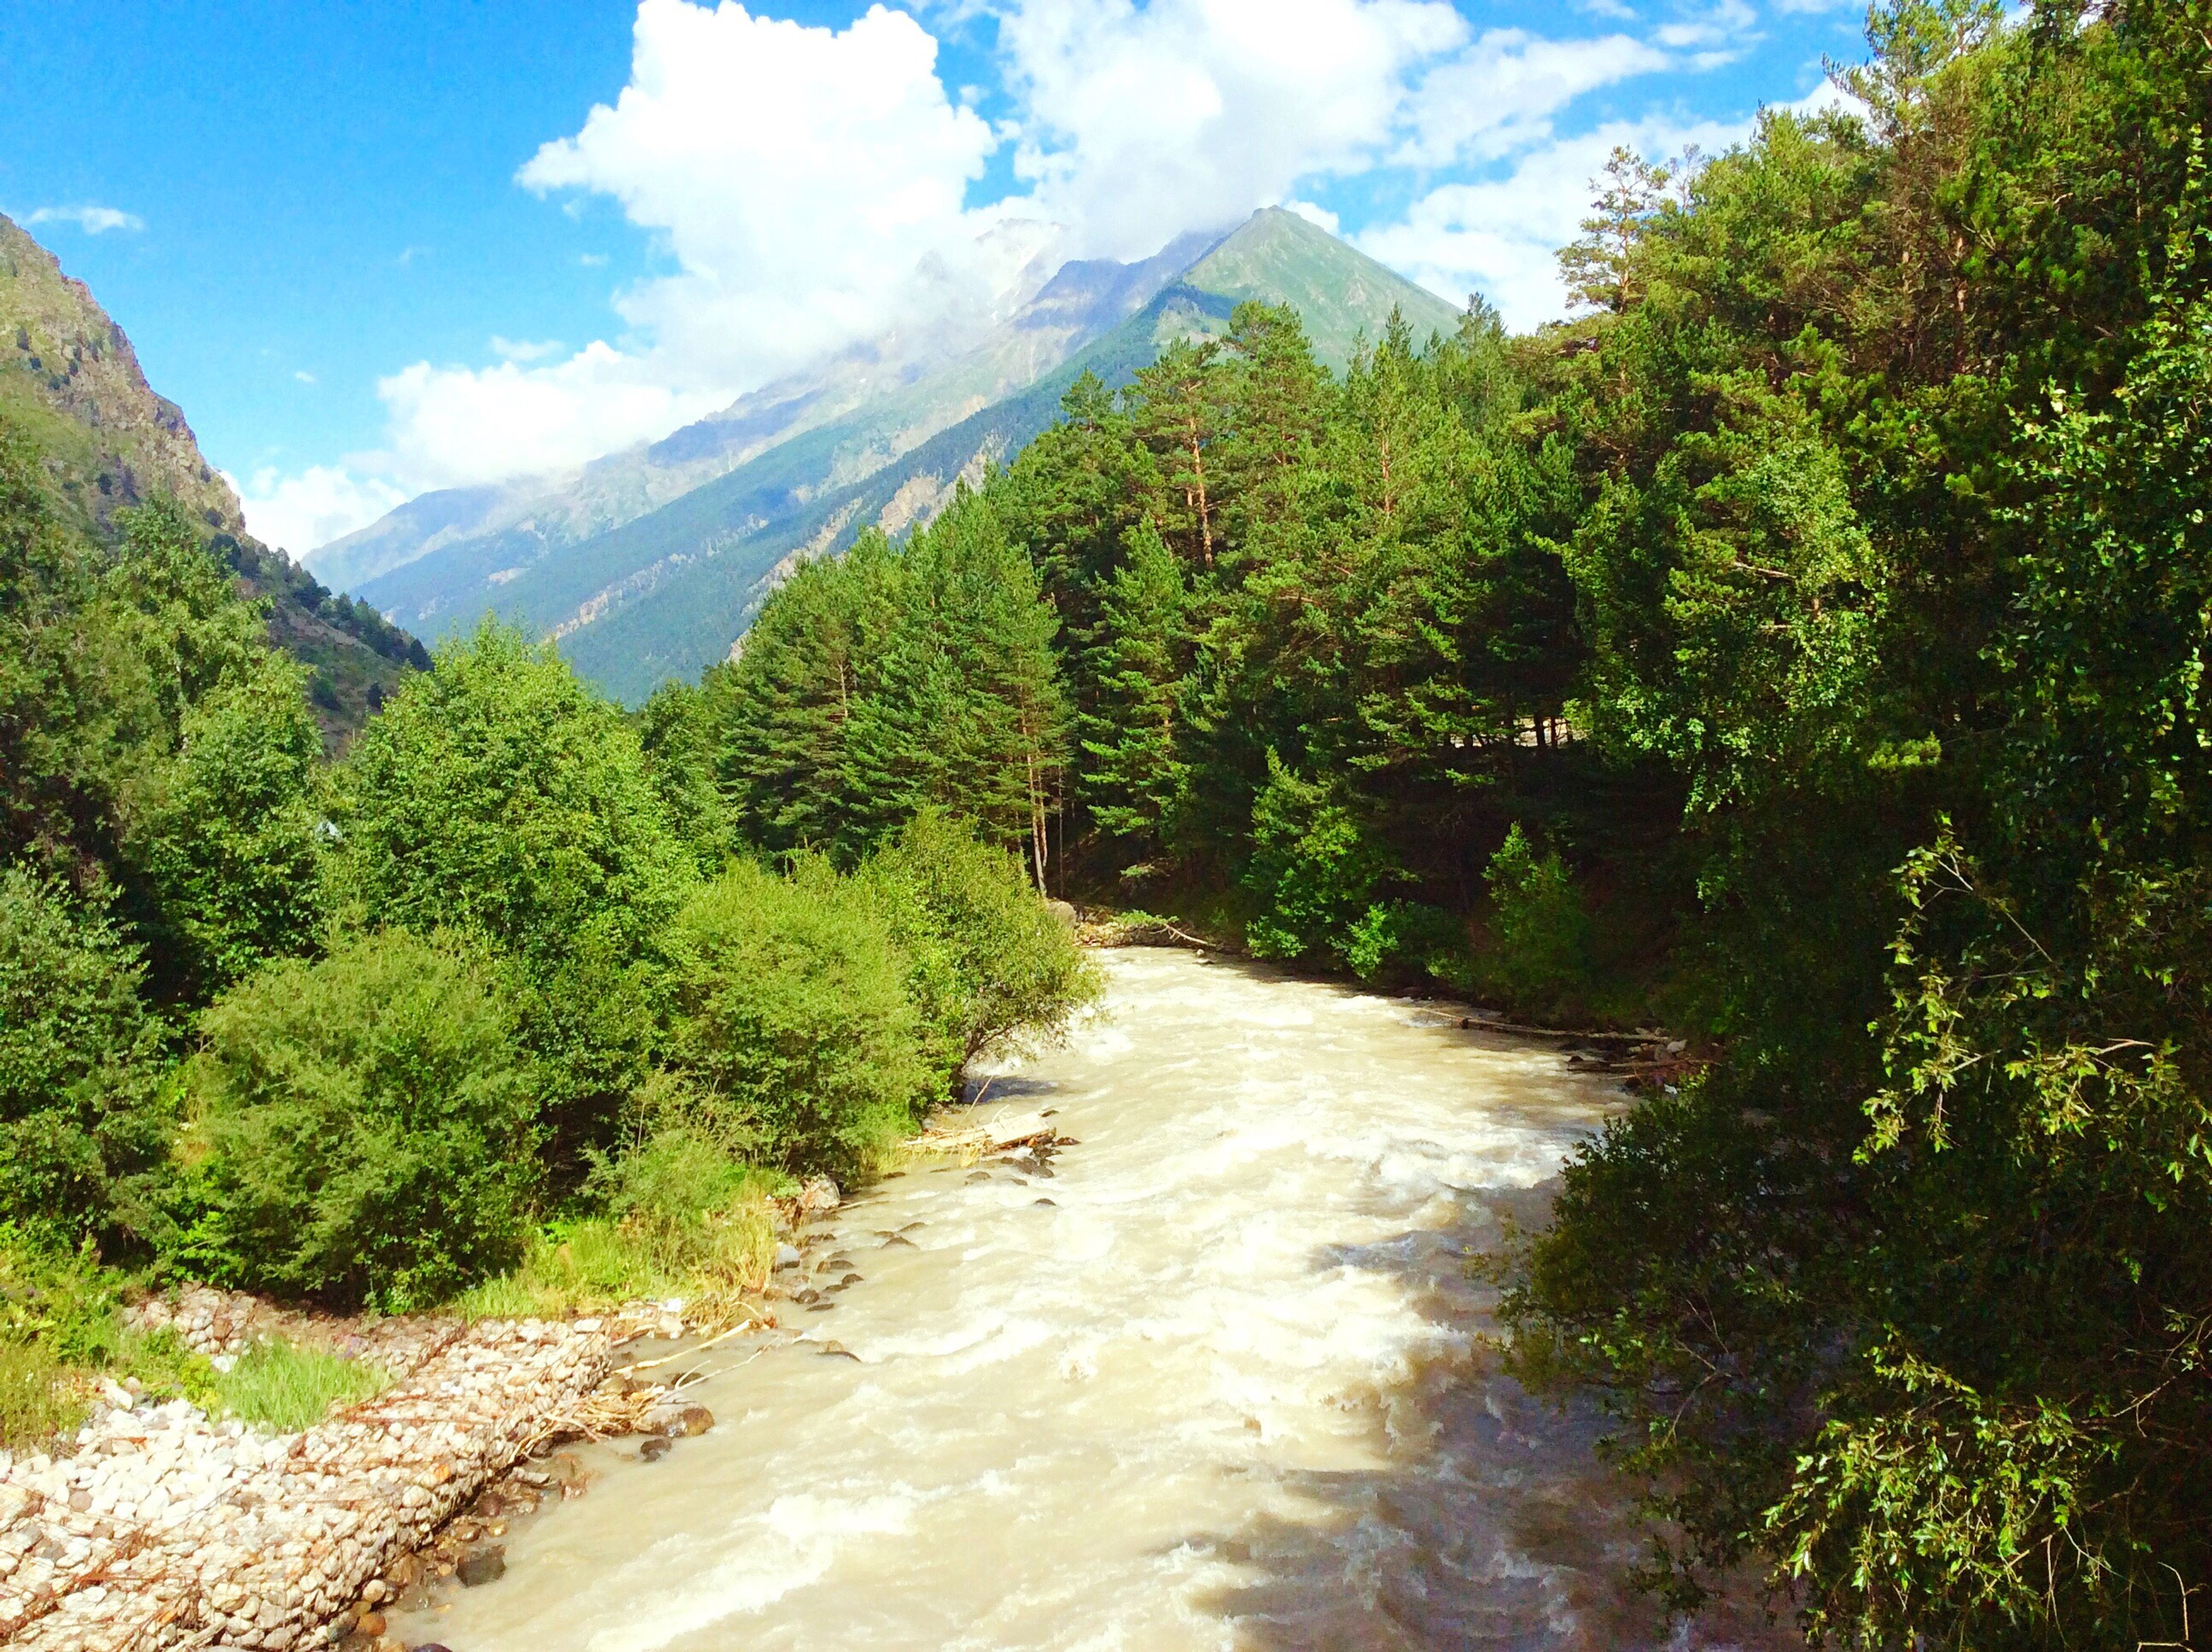 mountain, tree, tranquil scene, the way forward, scenics, tranquility, plant, growth, nature, sky, green color, beauty in nature, non-urban scene, mountain range, remote, cloud - sky, day, water, outdoors, stream, solitude, green, countryside, diminishing perspective, narrow, empty road, long, valley, majestic